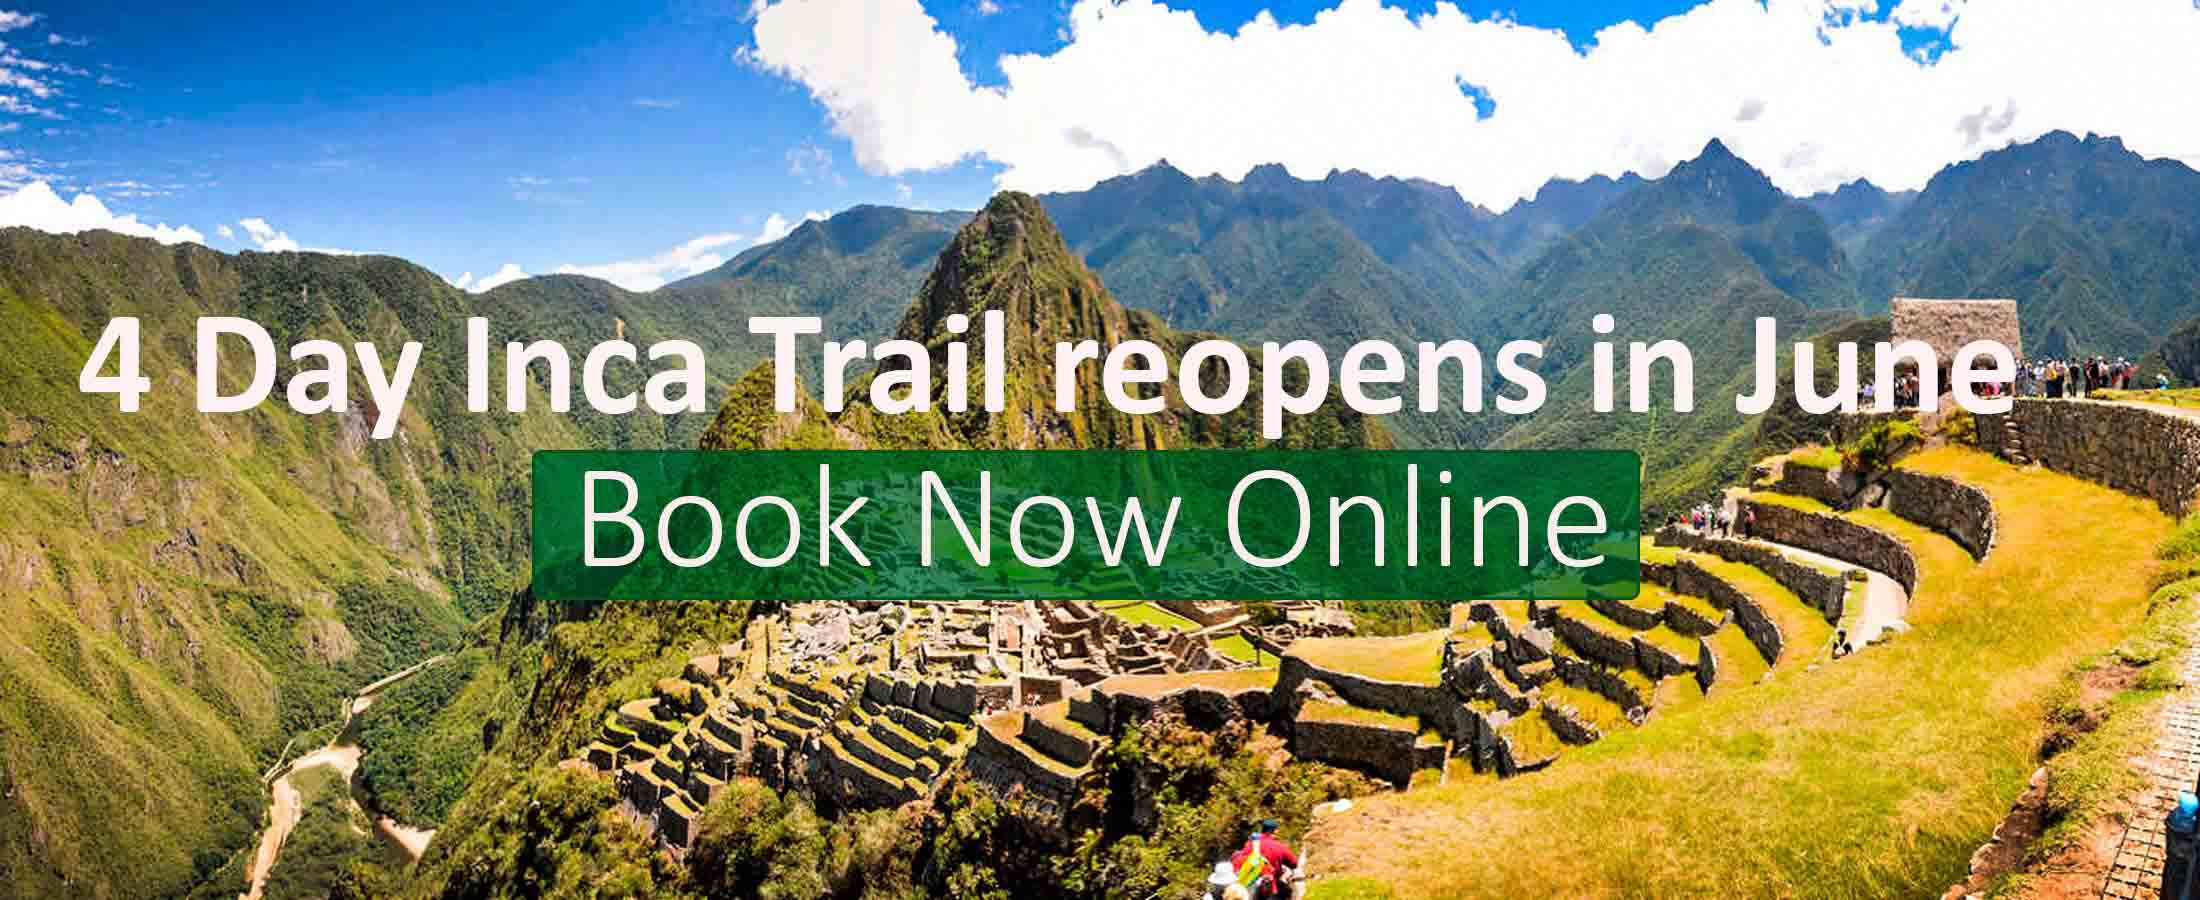 4 Day Inca Trail reopens in June 2021